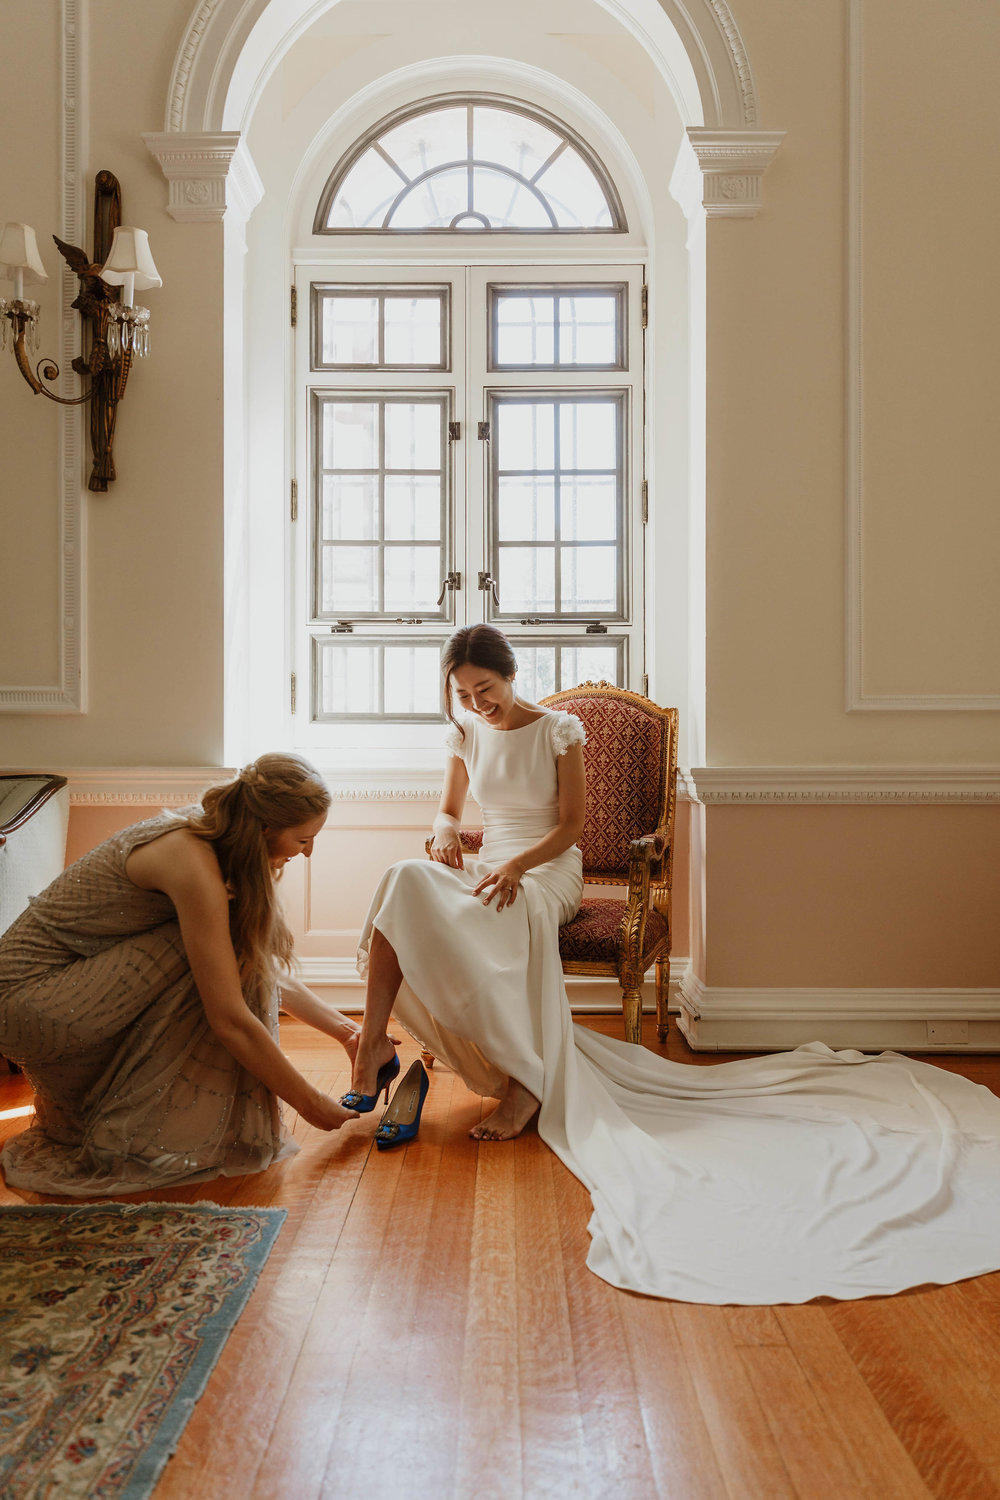 otto khan mansion wedding photographer elizabeth tsung photo